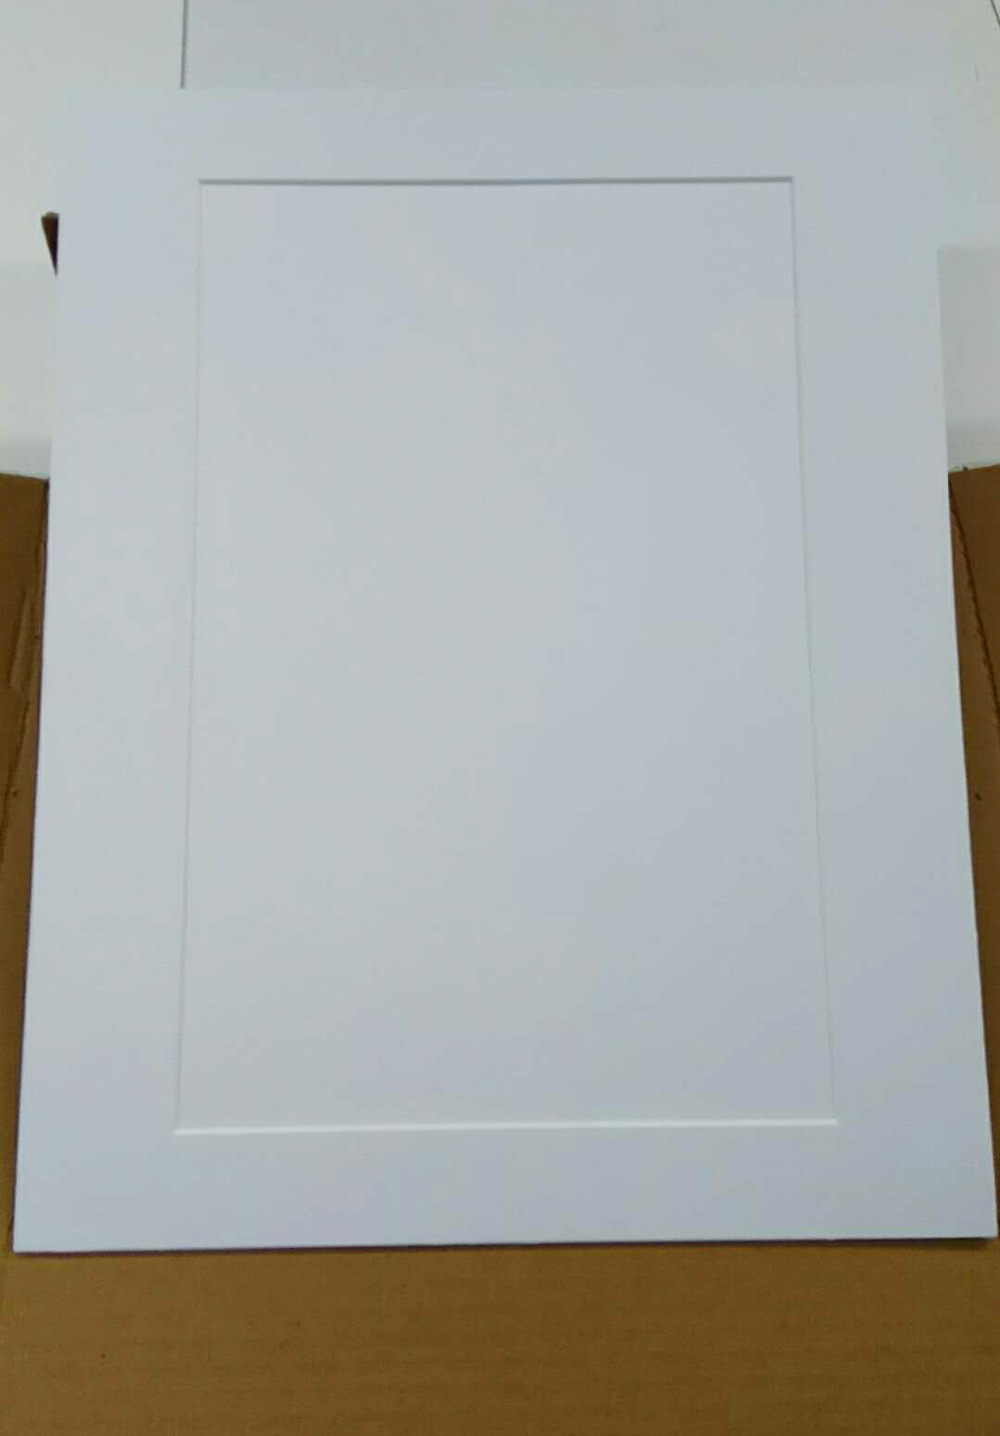 12pcs Pack 11x14 Solid Color Pre Cut Opening Matboard For